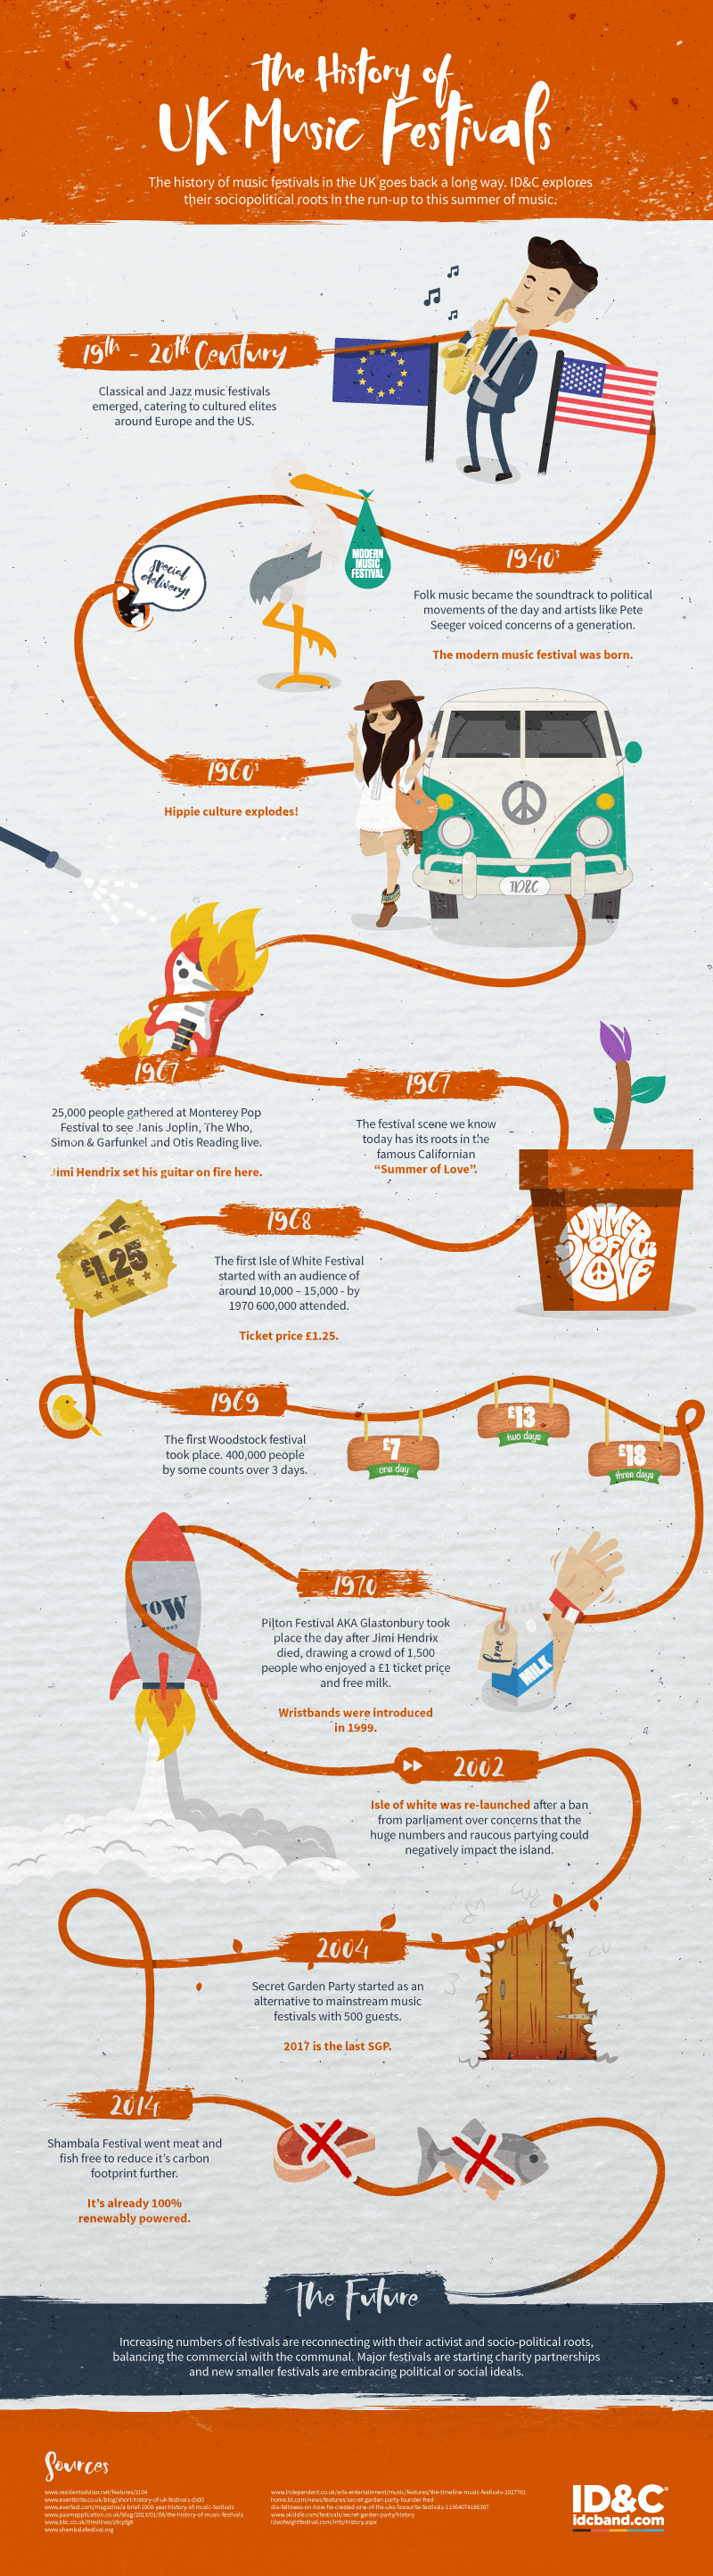 IDC-history-of-music-festivals-infographic-min